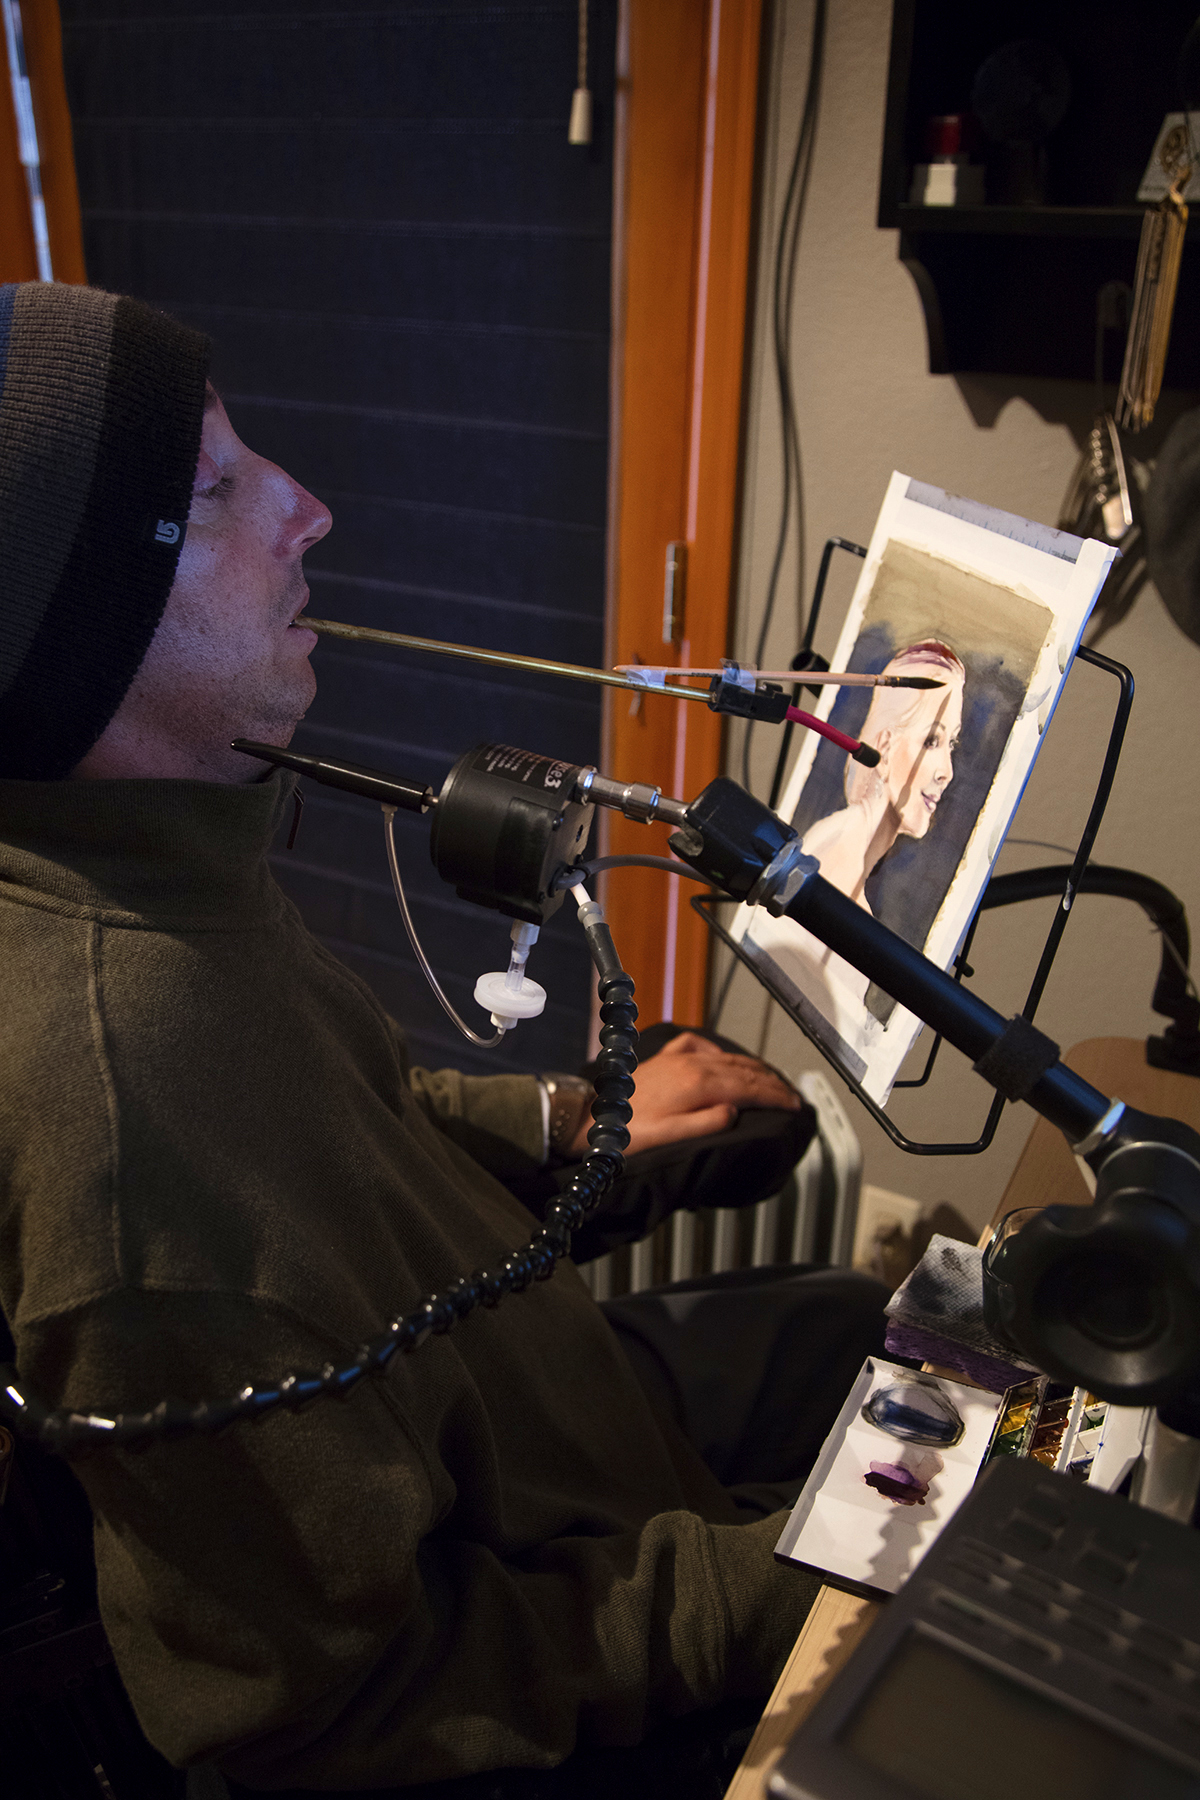 Quadriplegic and Craig Hospital SCI Rehabilitation Graduate Brett Colonell uses form-fitting mouth sticks to paint